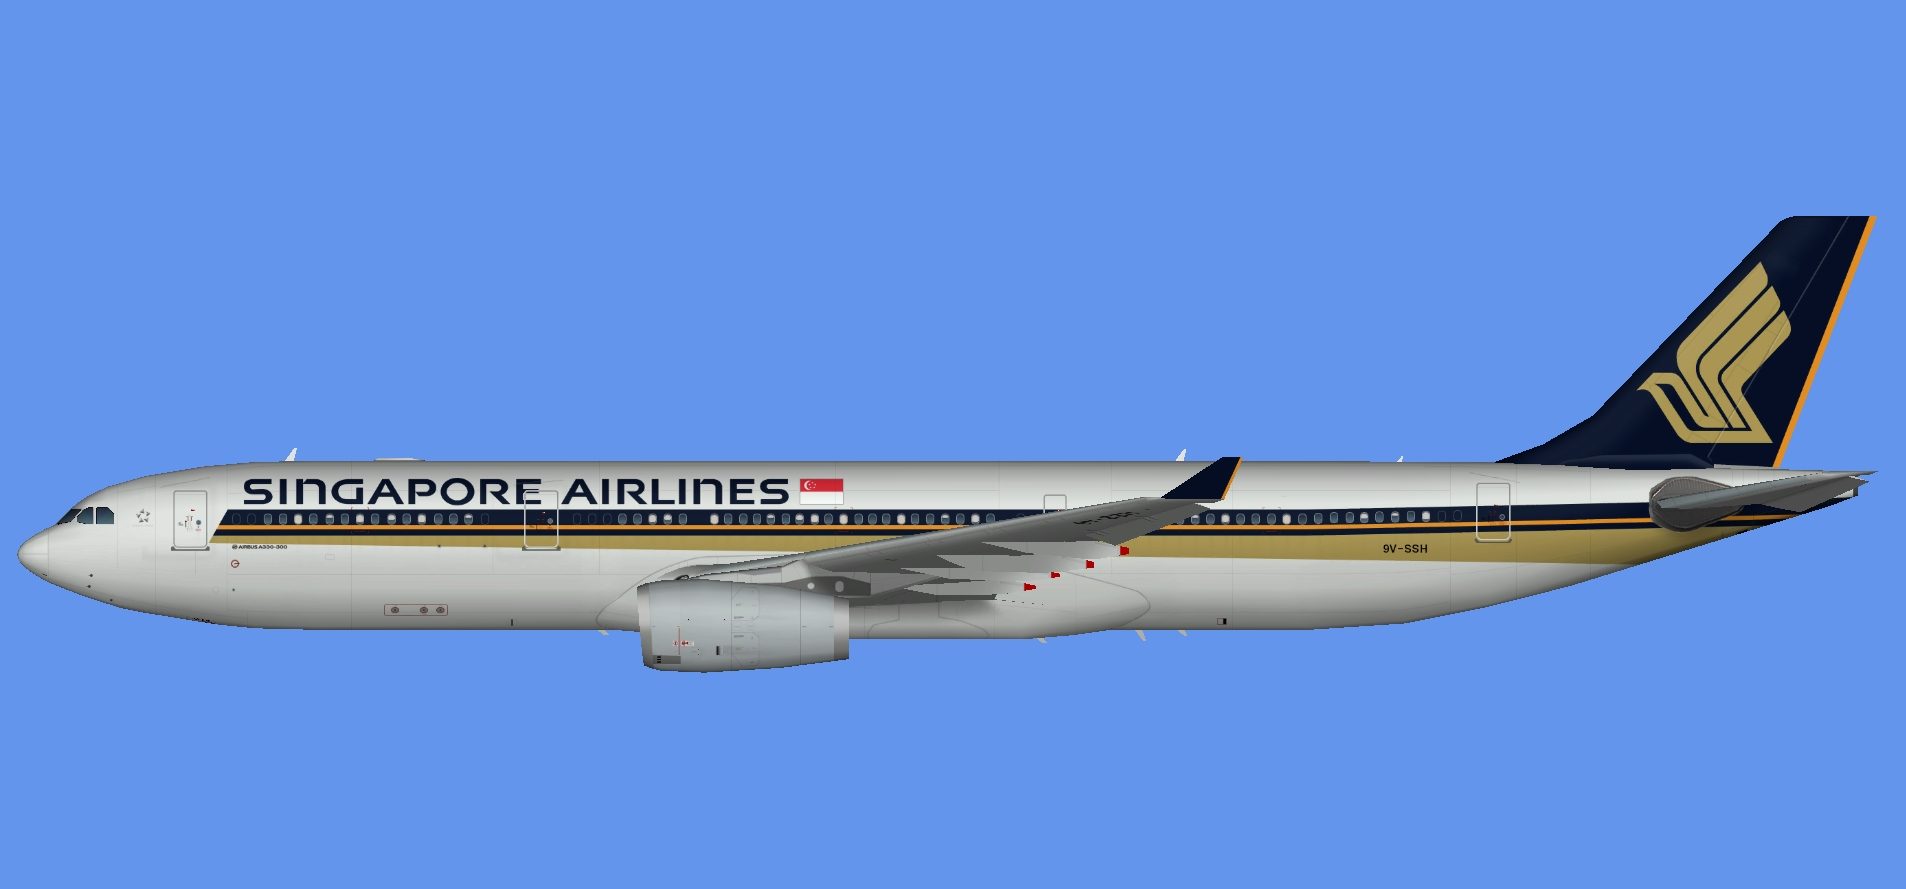 Singapore Airlines - The Flying Carpet Hub